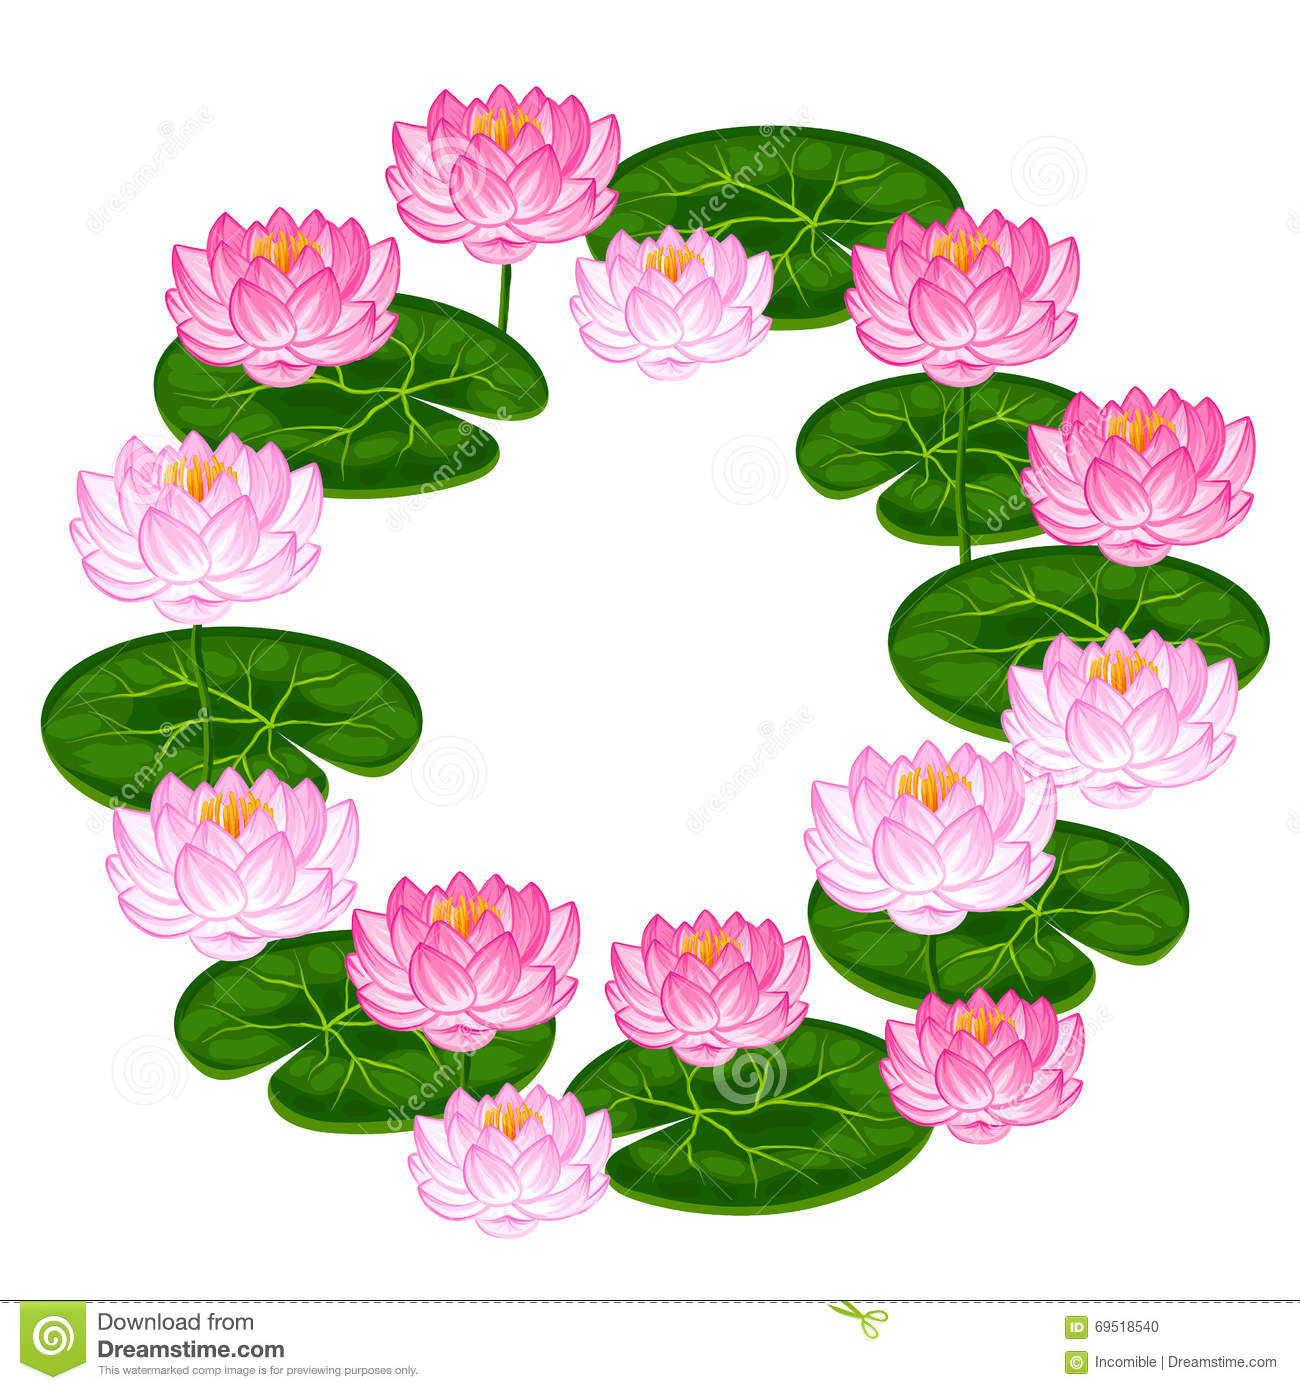 Natural frame with lotus flowers and leaves image for invitations natural frame with lotus flowers and leaves image for invitations greeting cards posters mightylinksfo